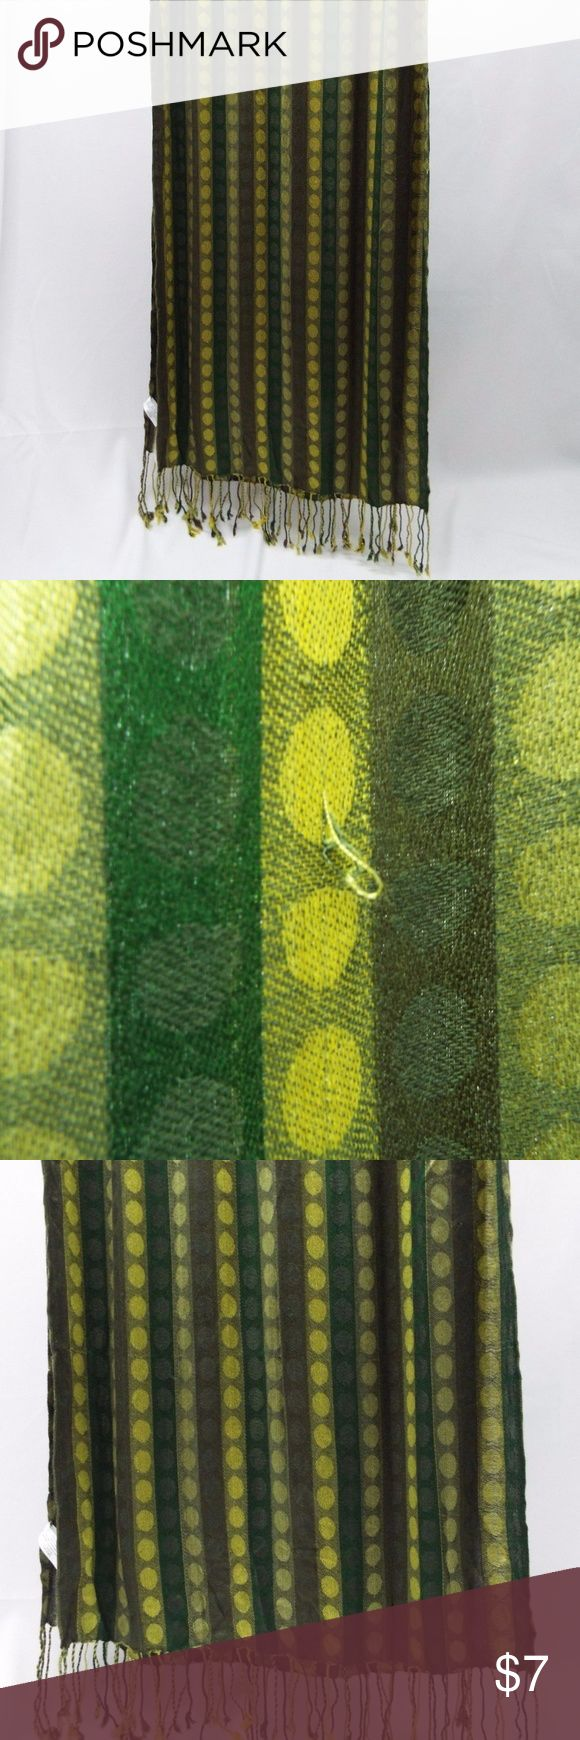 "Green Scarf  20"" x 76"" Ultra Soft Green Scarf made in India USA Seller $20 retail  20"" x 76"" Ultra Soft  #6371  small fabric pull(in pictures) from a major retailer looks Very good . Accessories Scarves & Wraps"